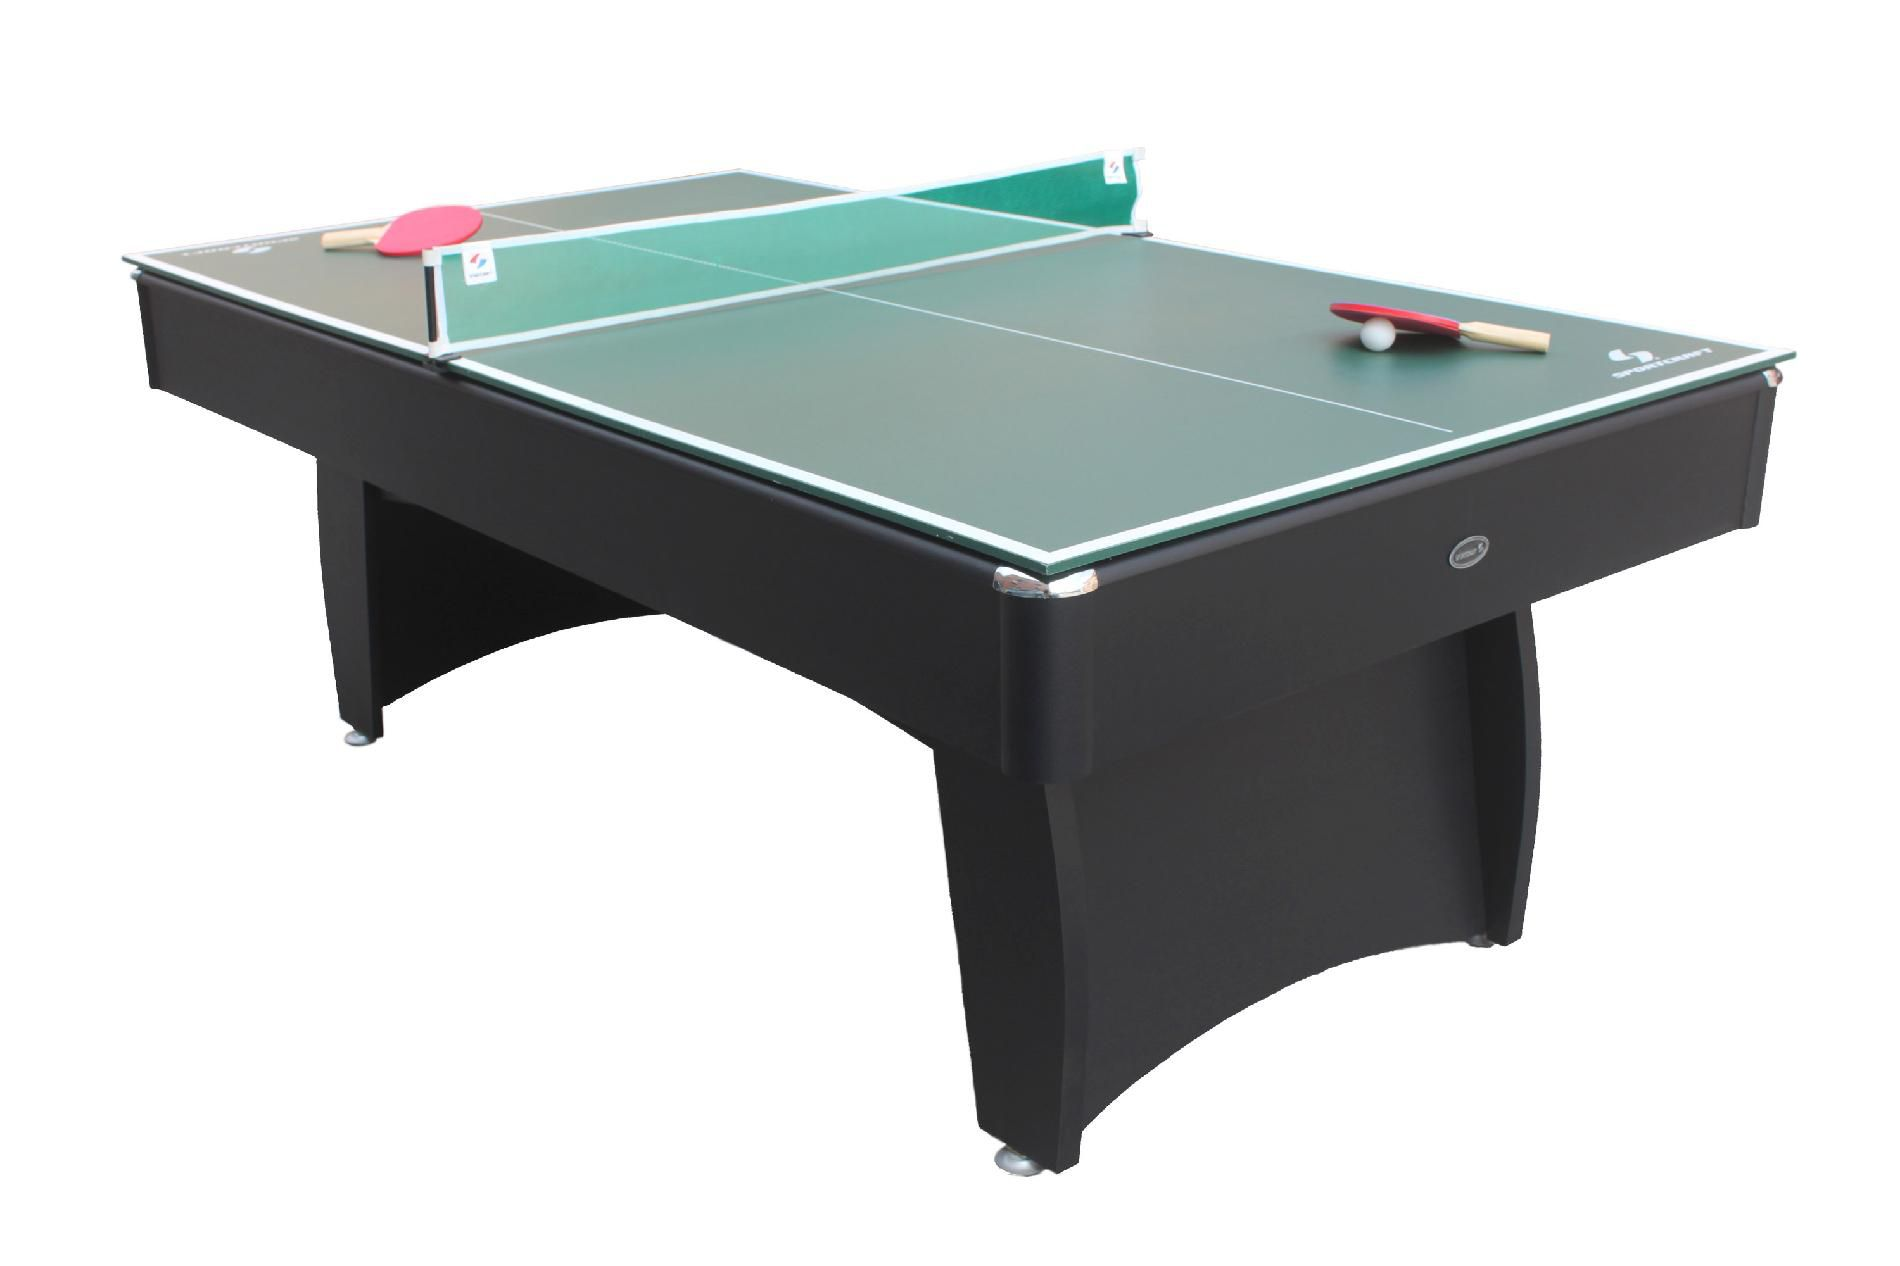 Sportcraft 7ft. Auburn Billiard Table with Bonus Table Tennis Top